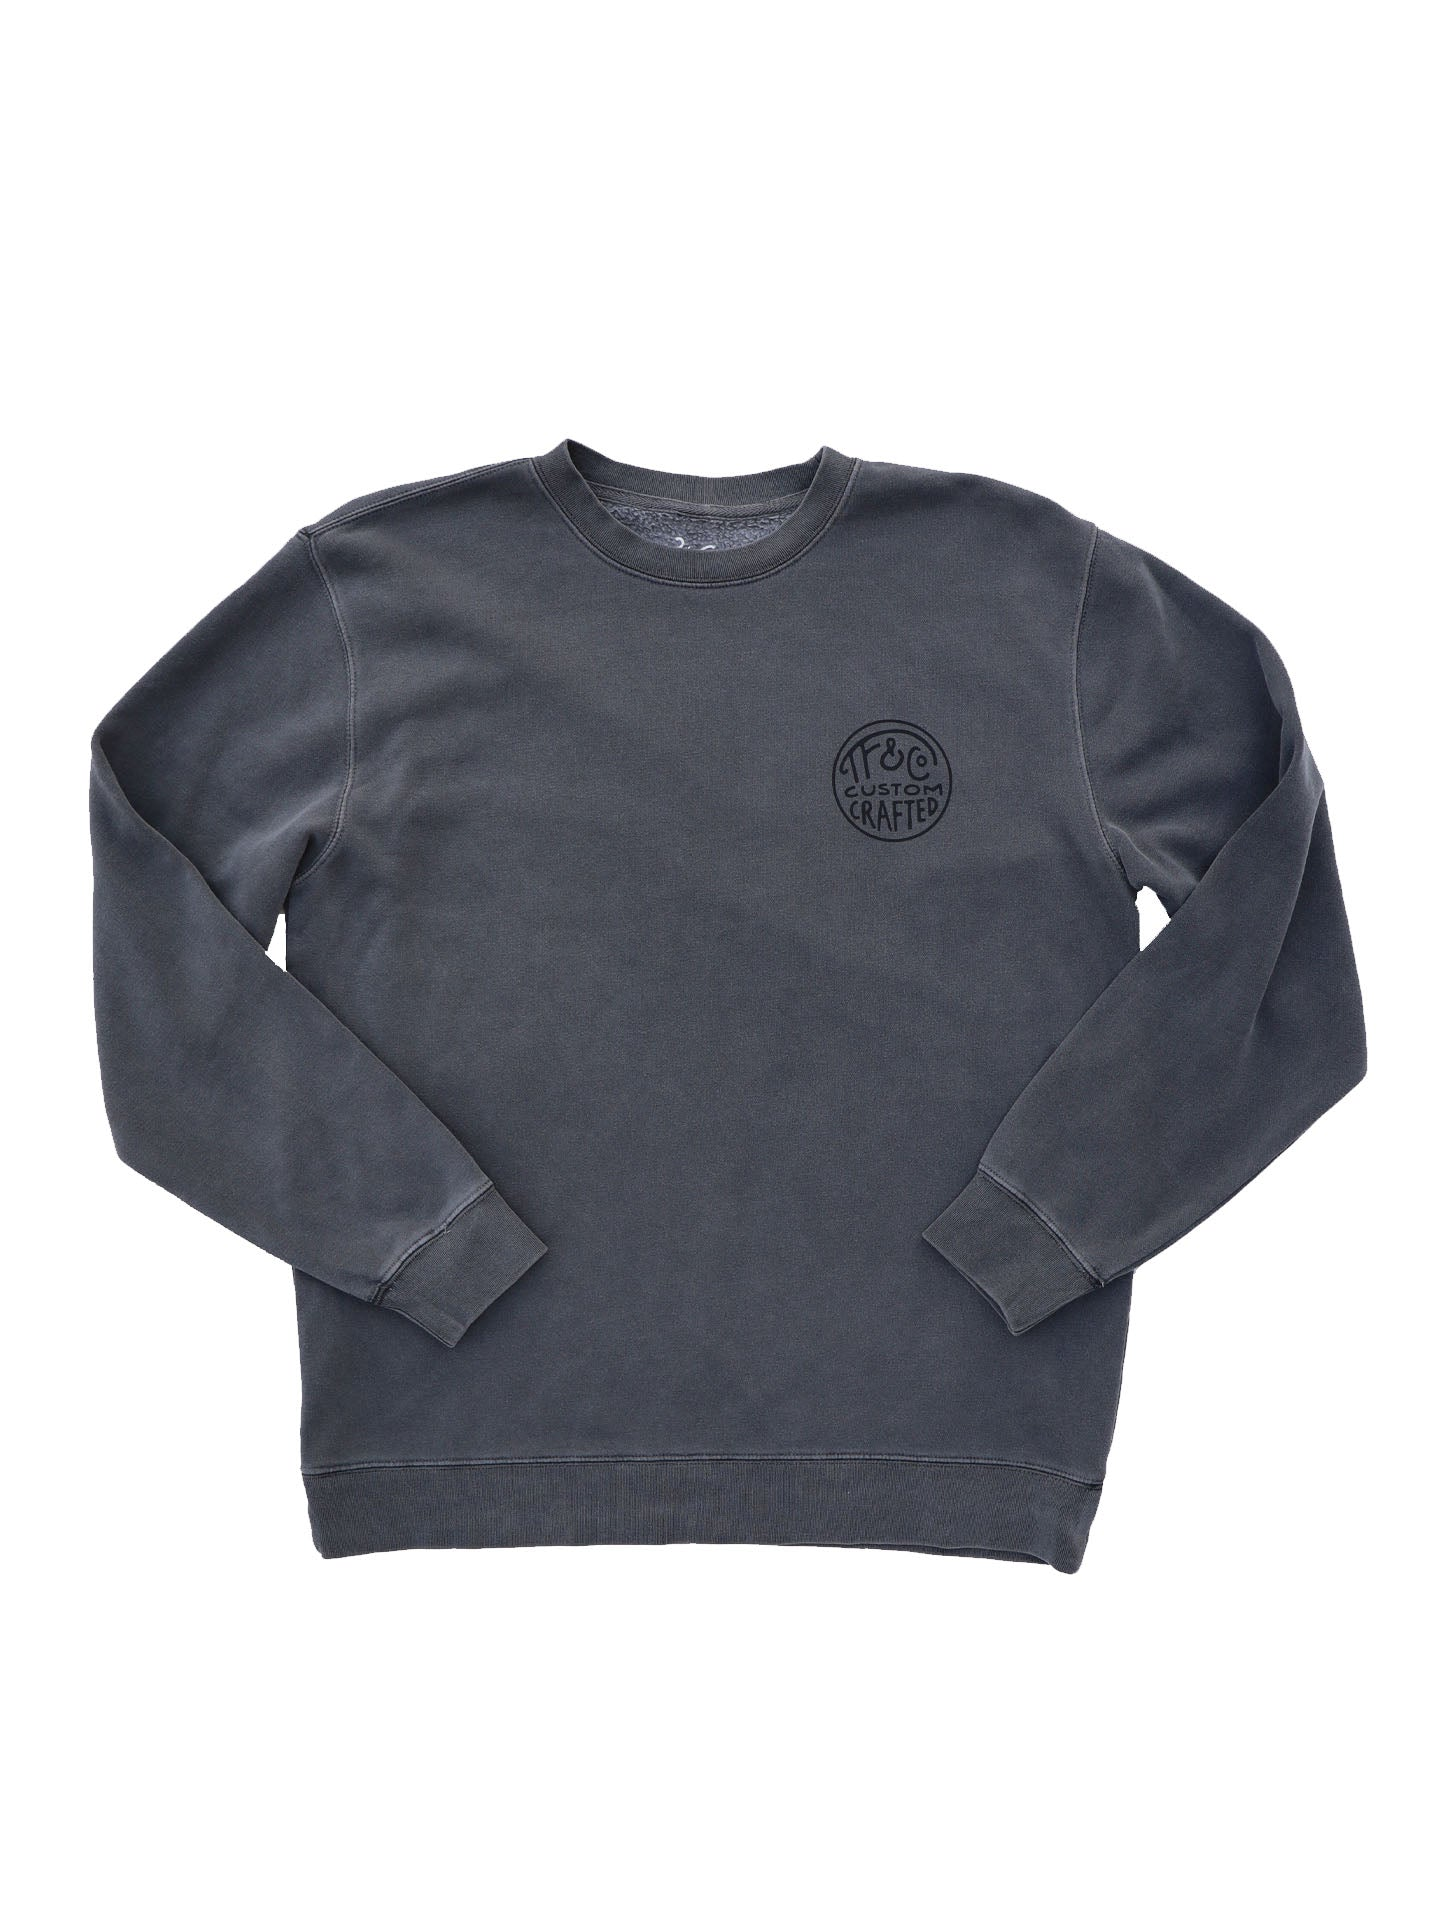 TF BRANDED PULLOVER - VINTAGE BLACK - Tankfarm & Co.